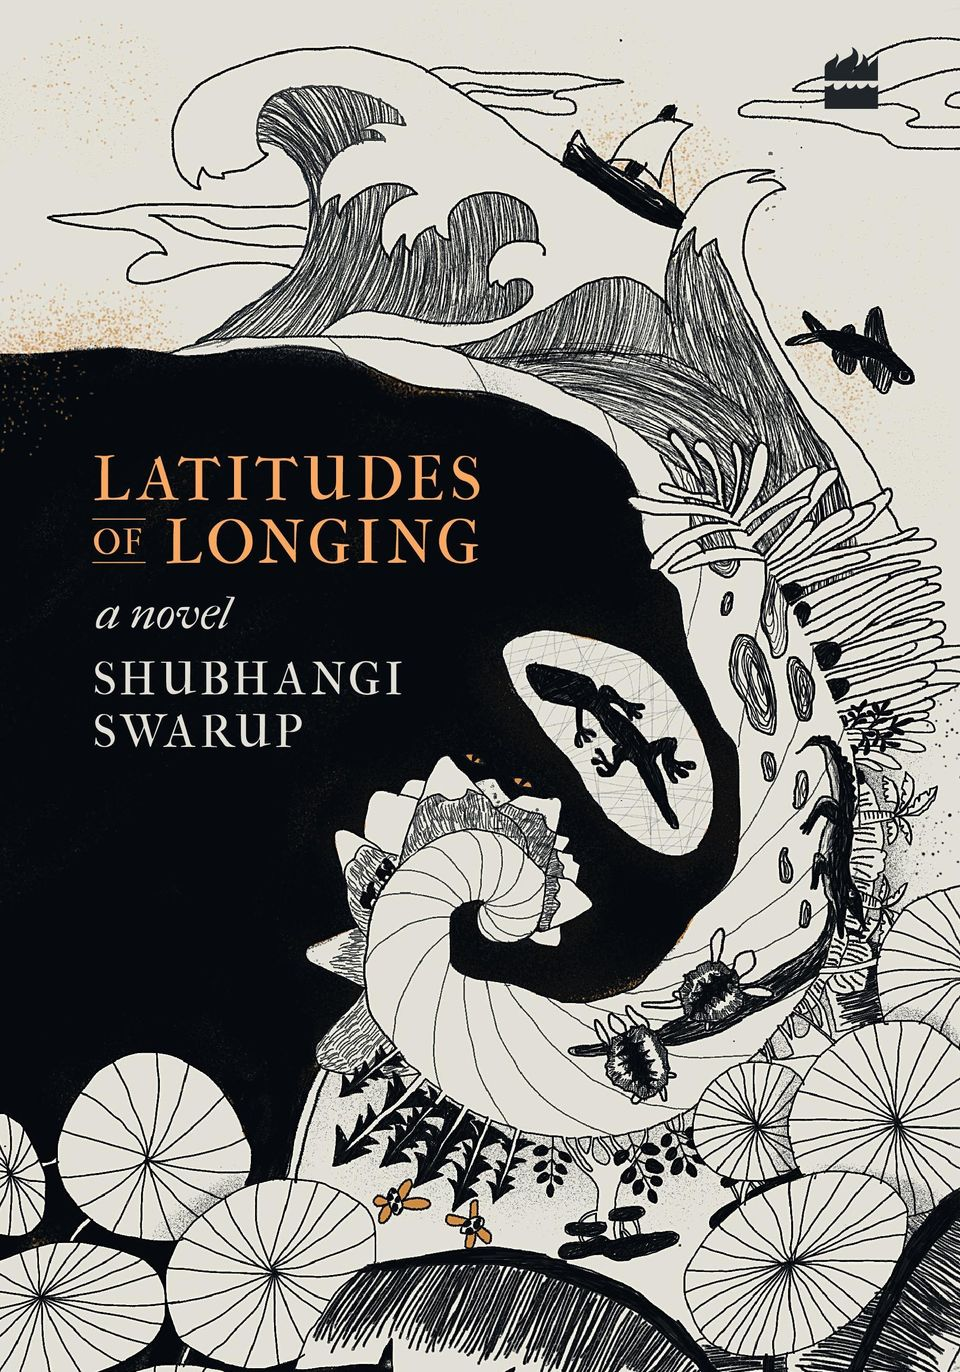 'Latitudes of Longing' is a perfect read for fans of Anita Desai and Arundhati